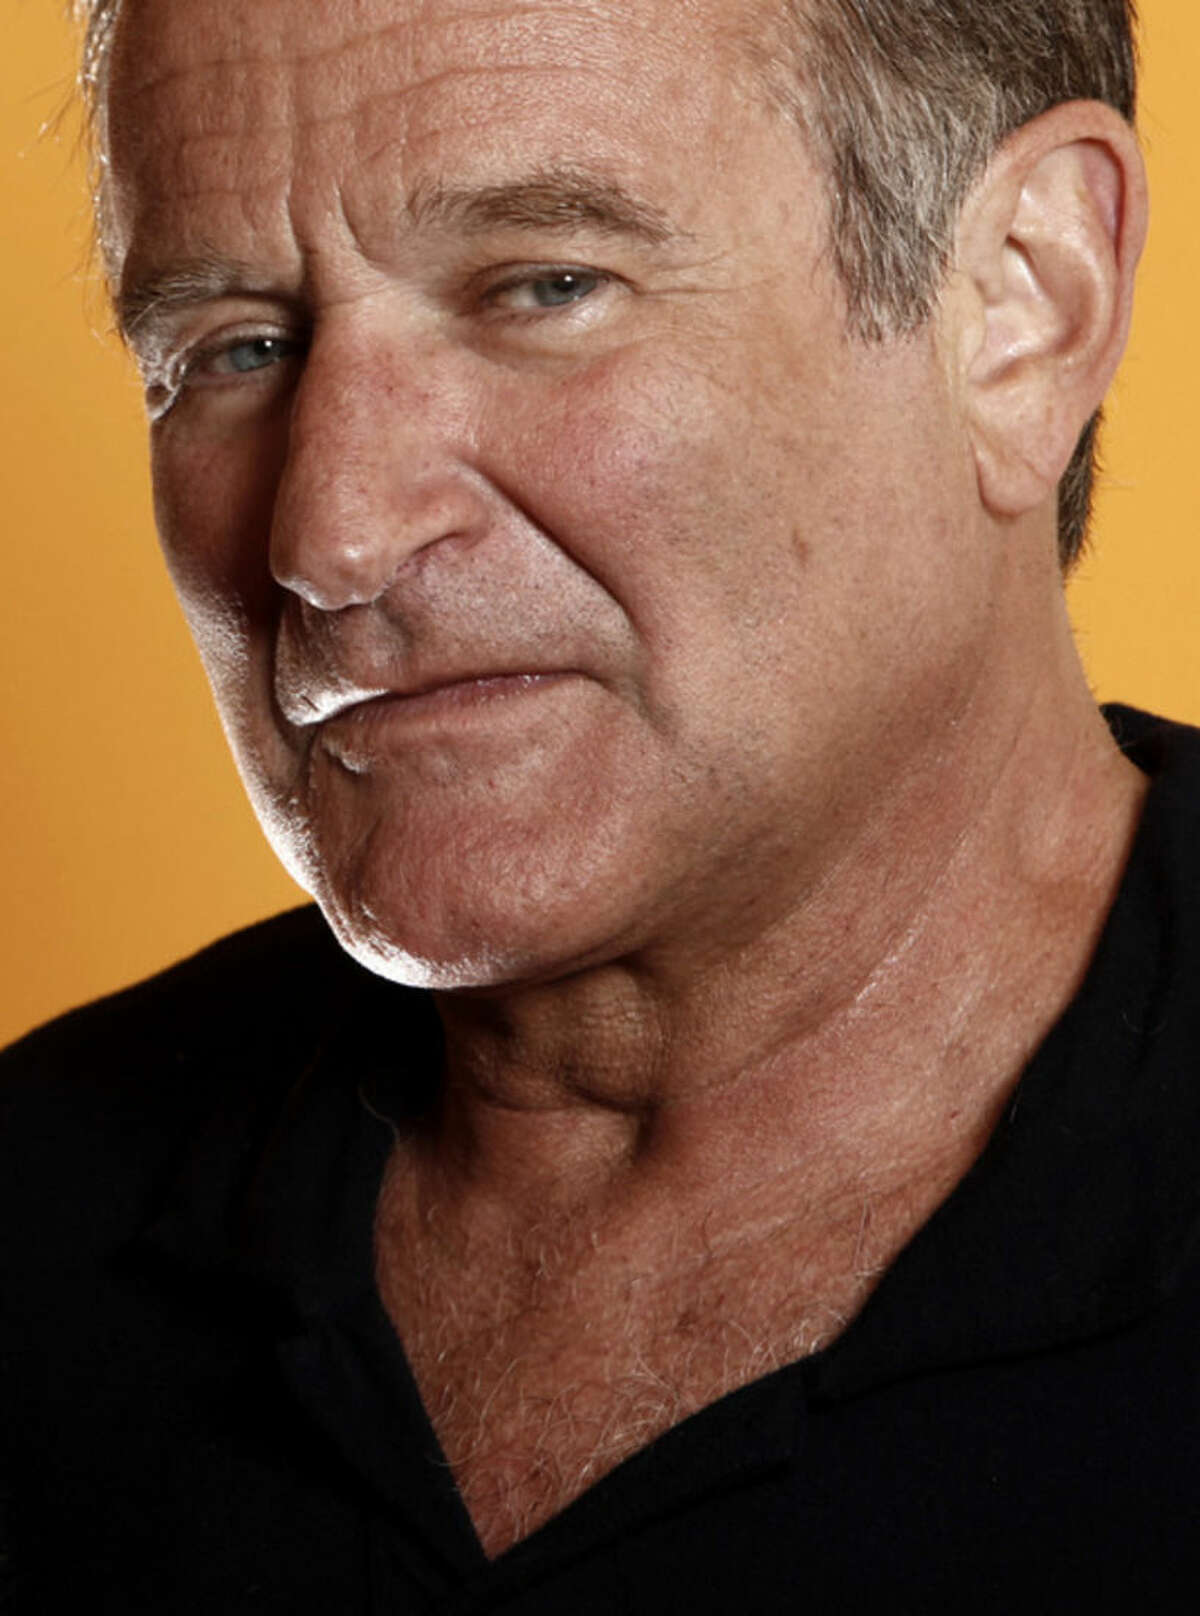 """FILE - This Aug. 14, 2009 file photo shows actor Robin Williams in Los Angeles. Williams and Durst are highlighted in """"3 Still Standing,"""" a new documentary featured later in April 2015 at Toronto's Hot Docs, North America's largest documentary festival. The film marks one of Williams' final appearances on screen. (AP Photo/Matt Sayles, File)"""